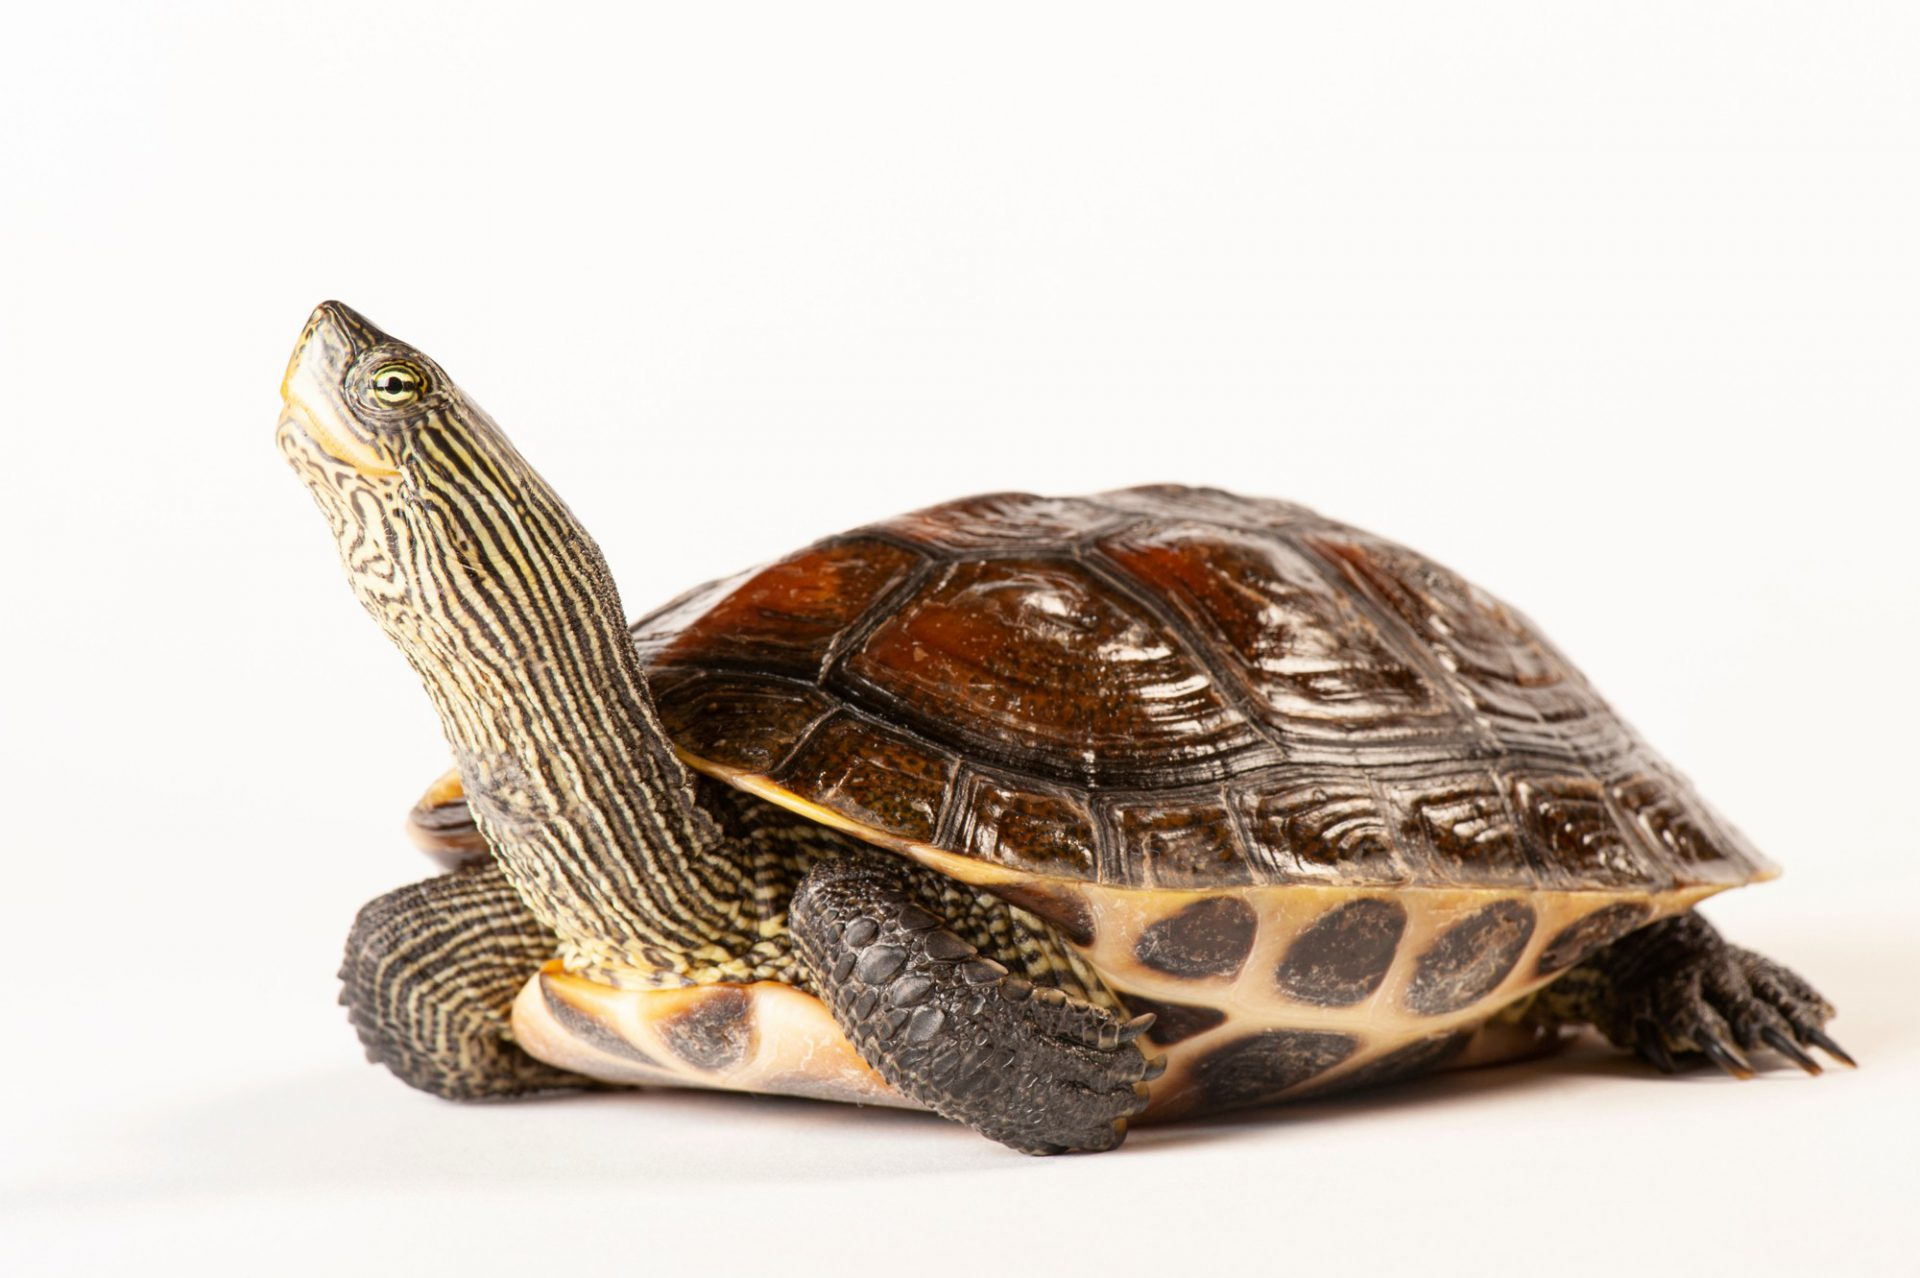 Photo: A golden thread turtle, Ocadia sinensis, at the Sedgwick County Zoo.